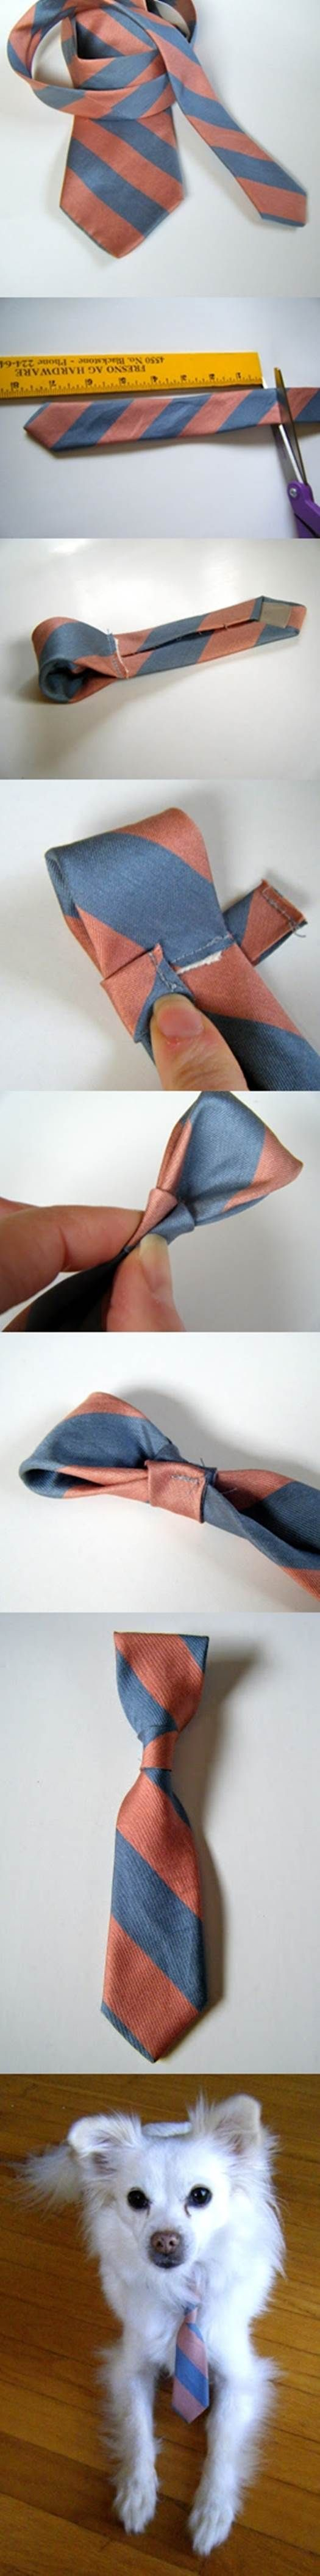 DIY Dog Neck Tie from a Recycled Neck Tie 2